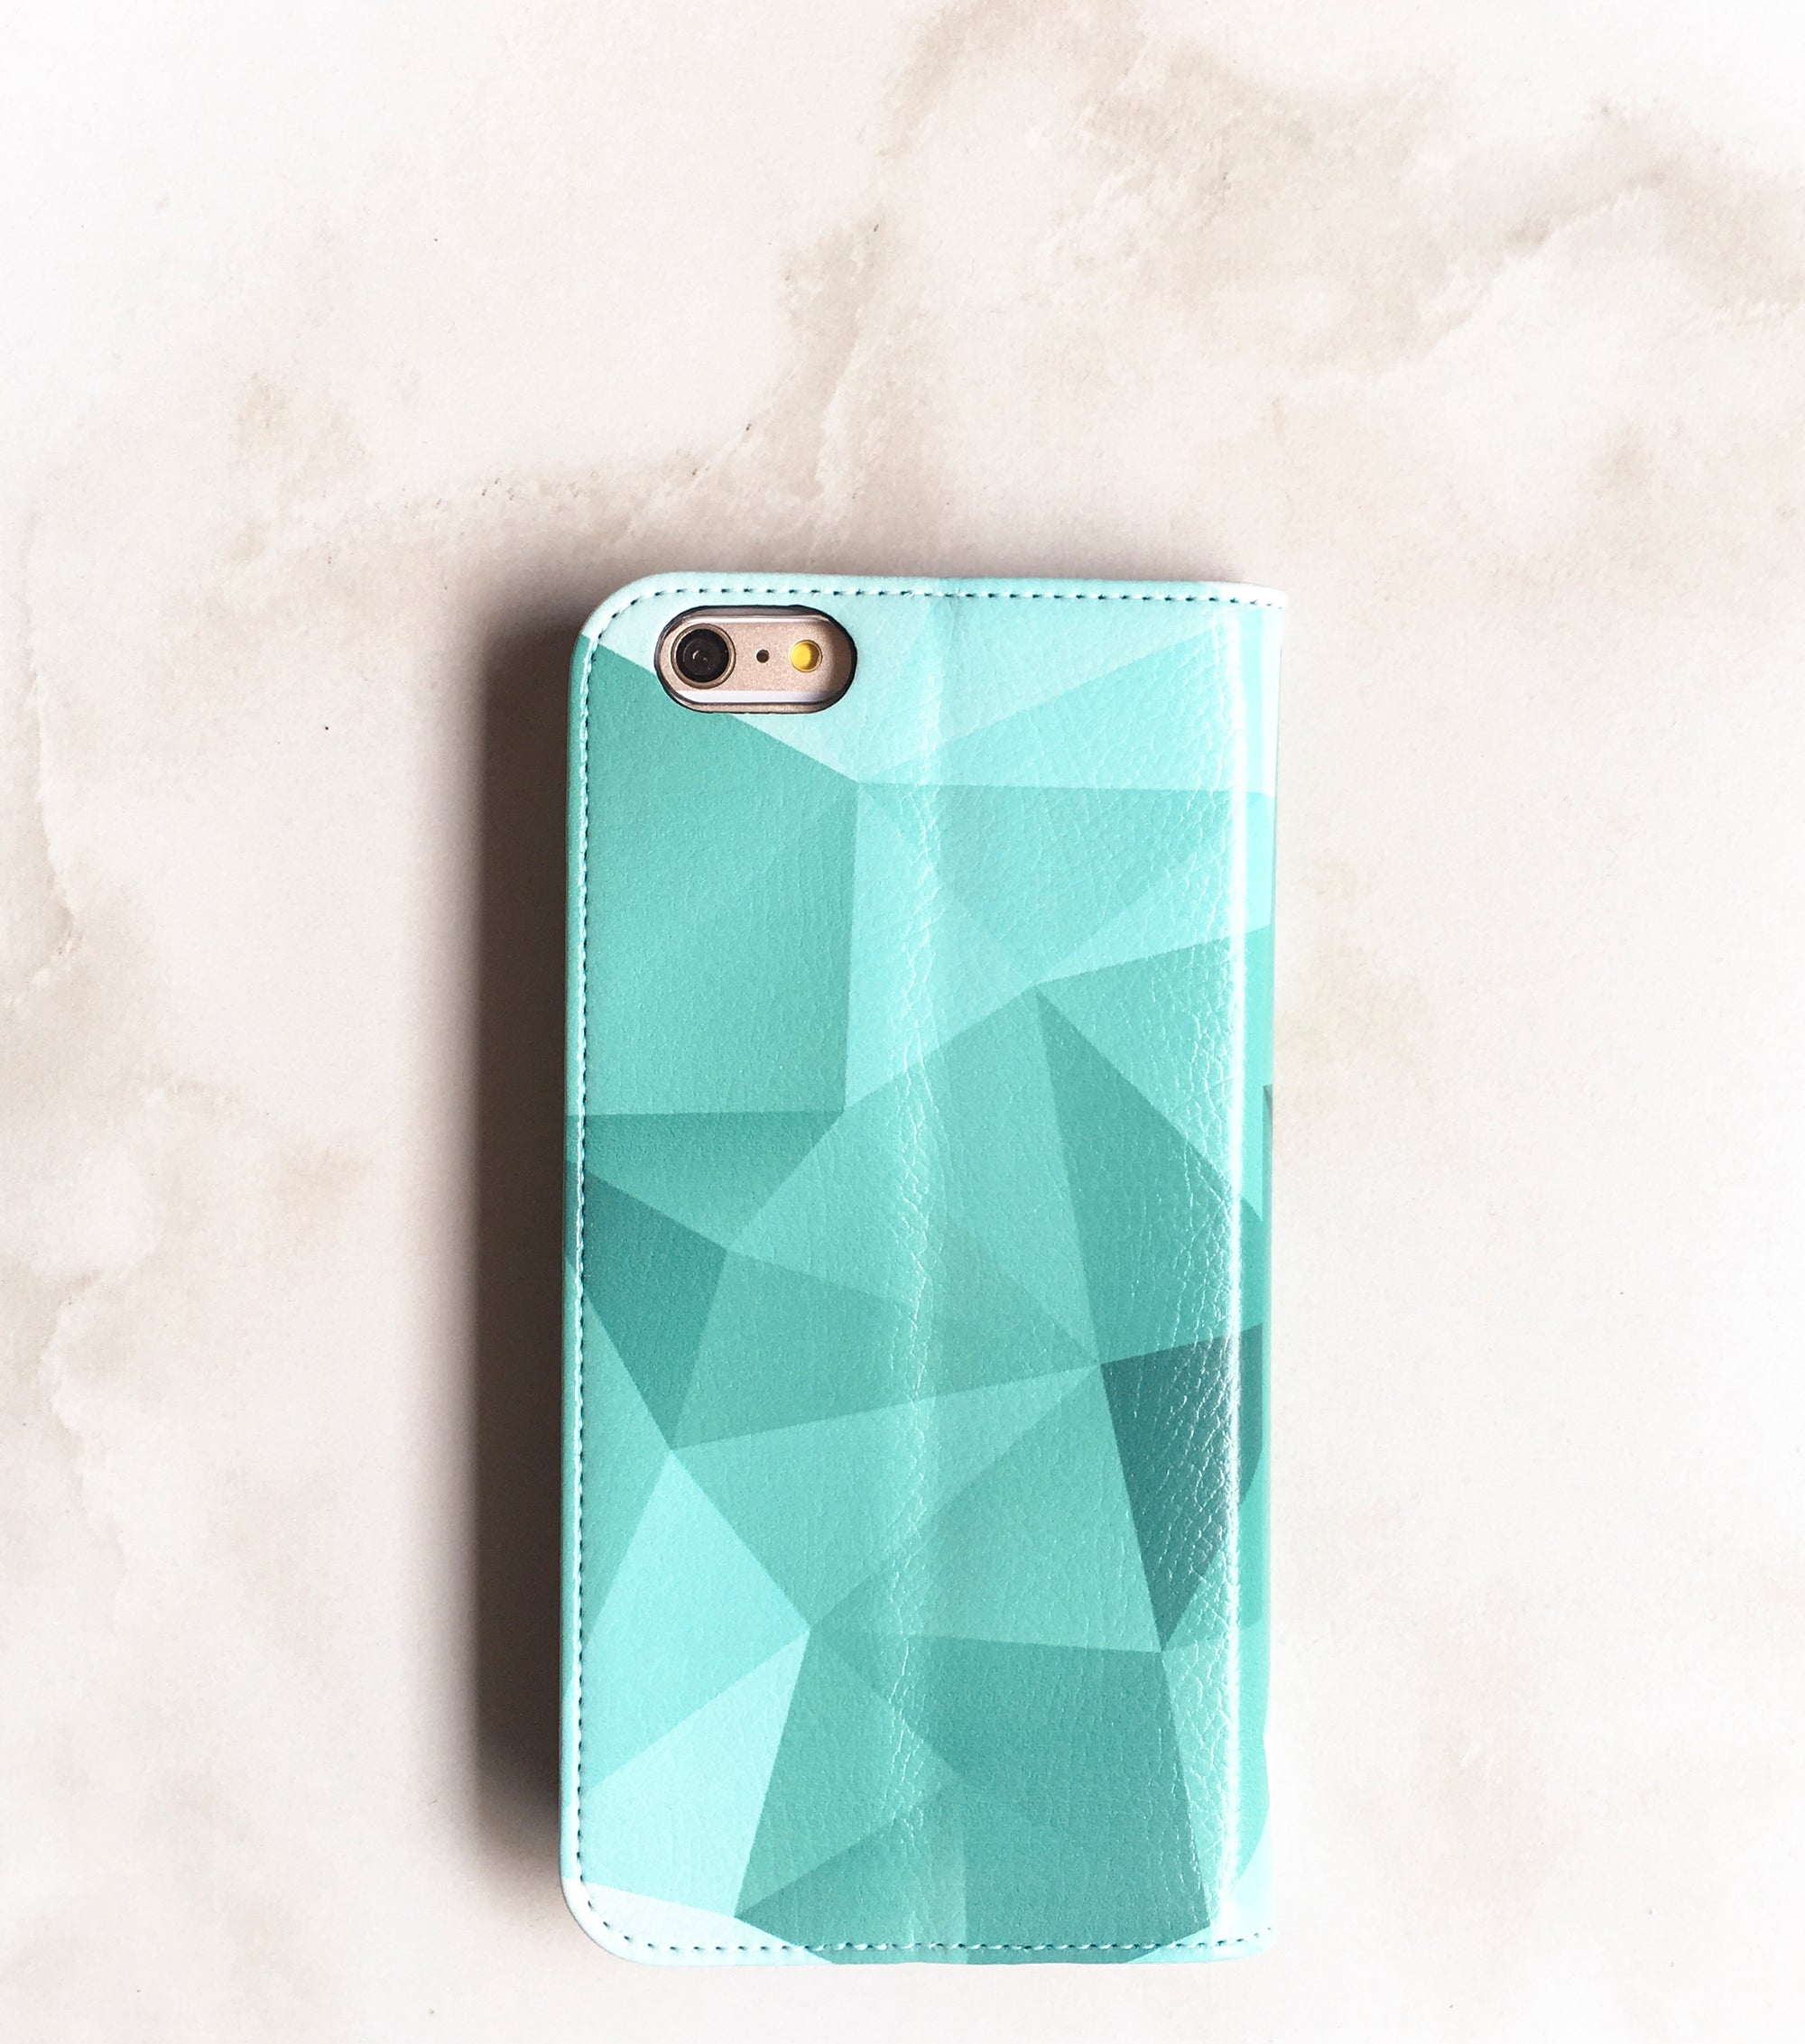 Teal Geometric iPhone 7 Wallet case